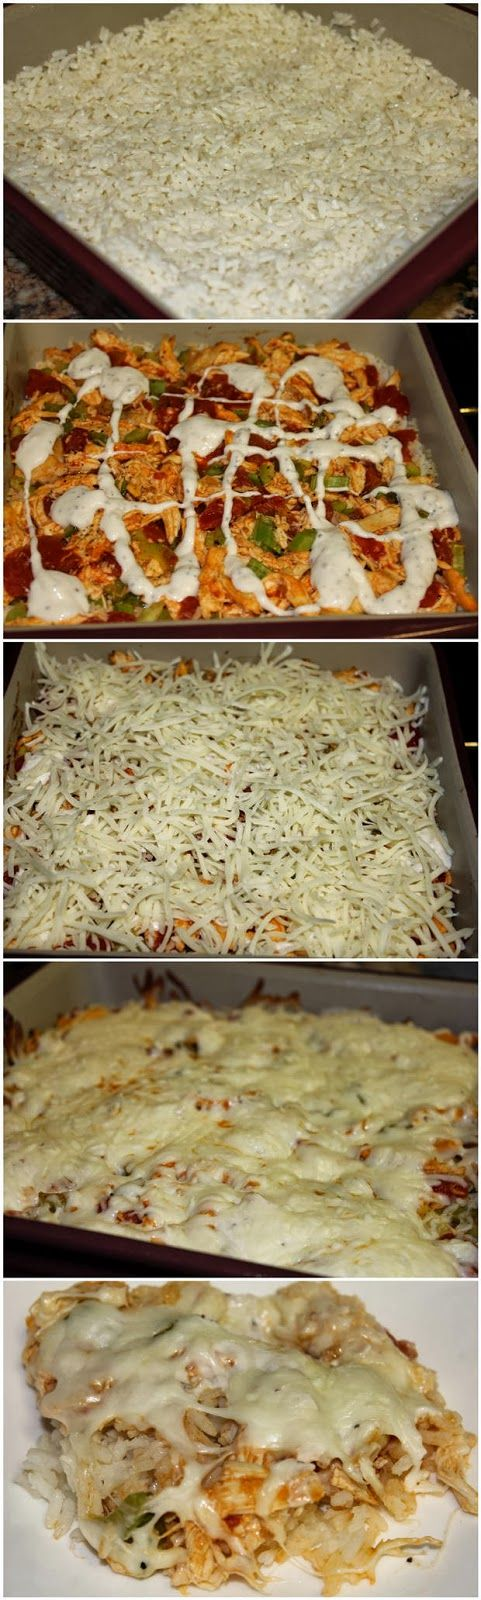 Buffalo Chicken Casserole- So good, but instead of the blue cheese use ranch dressing